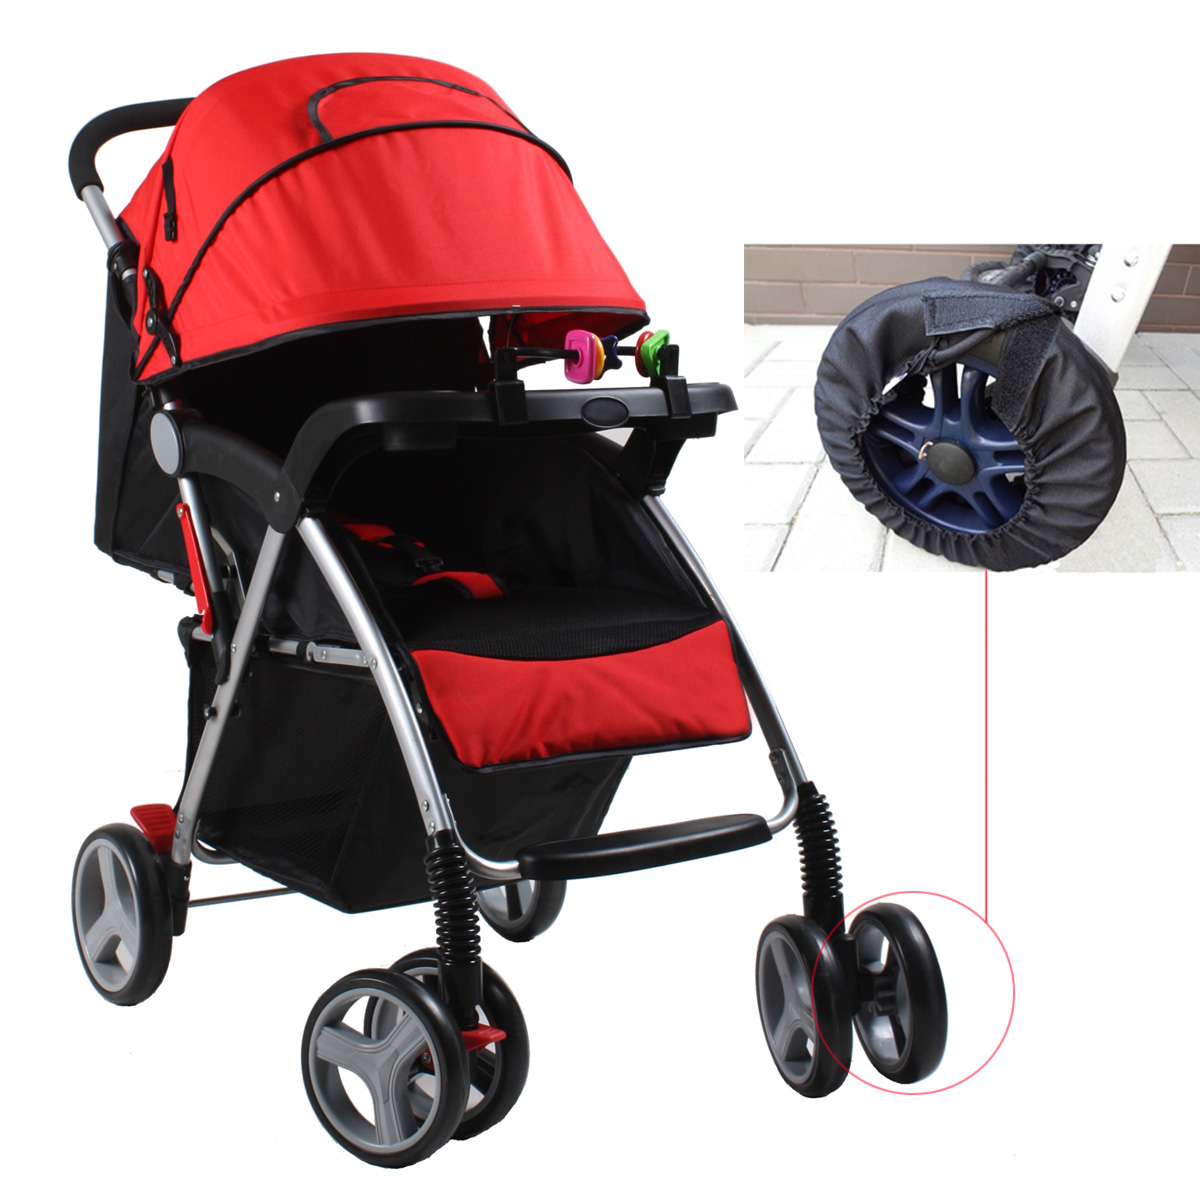 Popular Stroller Wheel-Buy Cheap Stroller Wheel lots from China ...